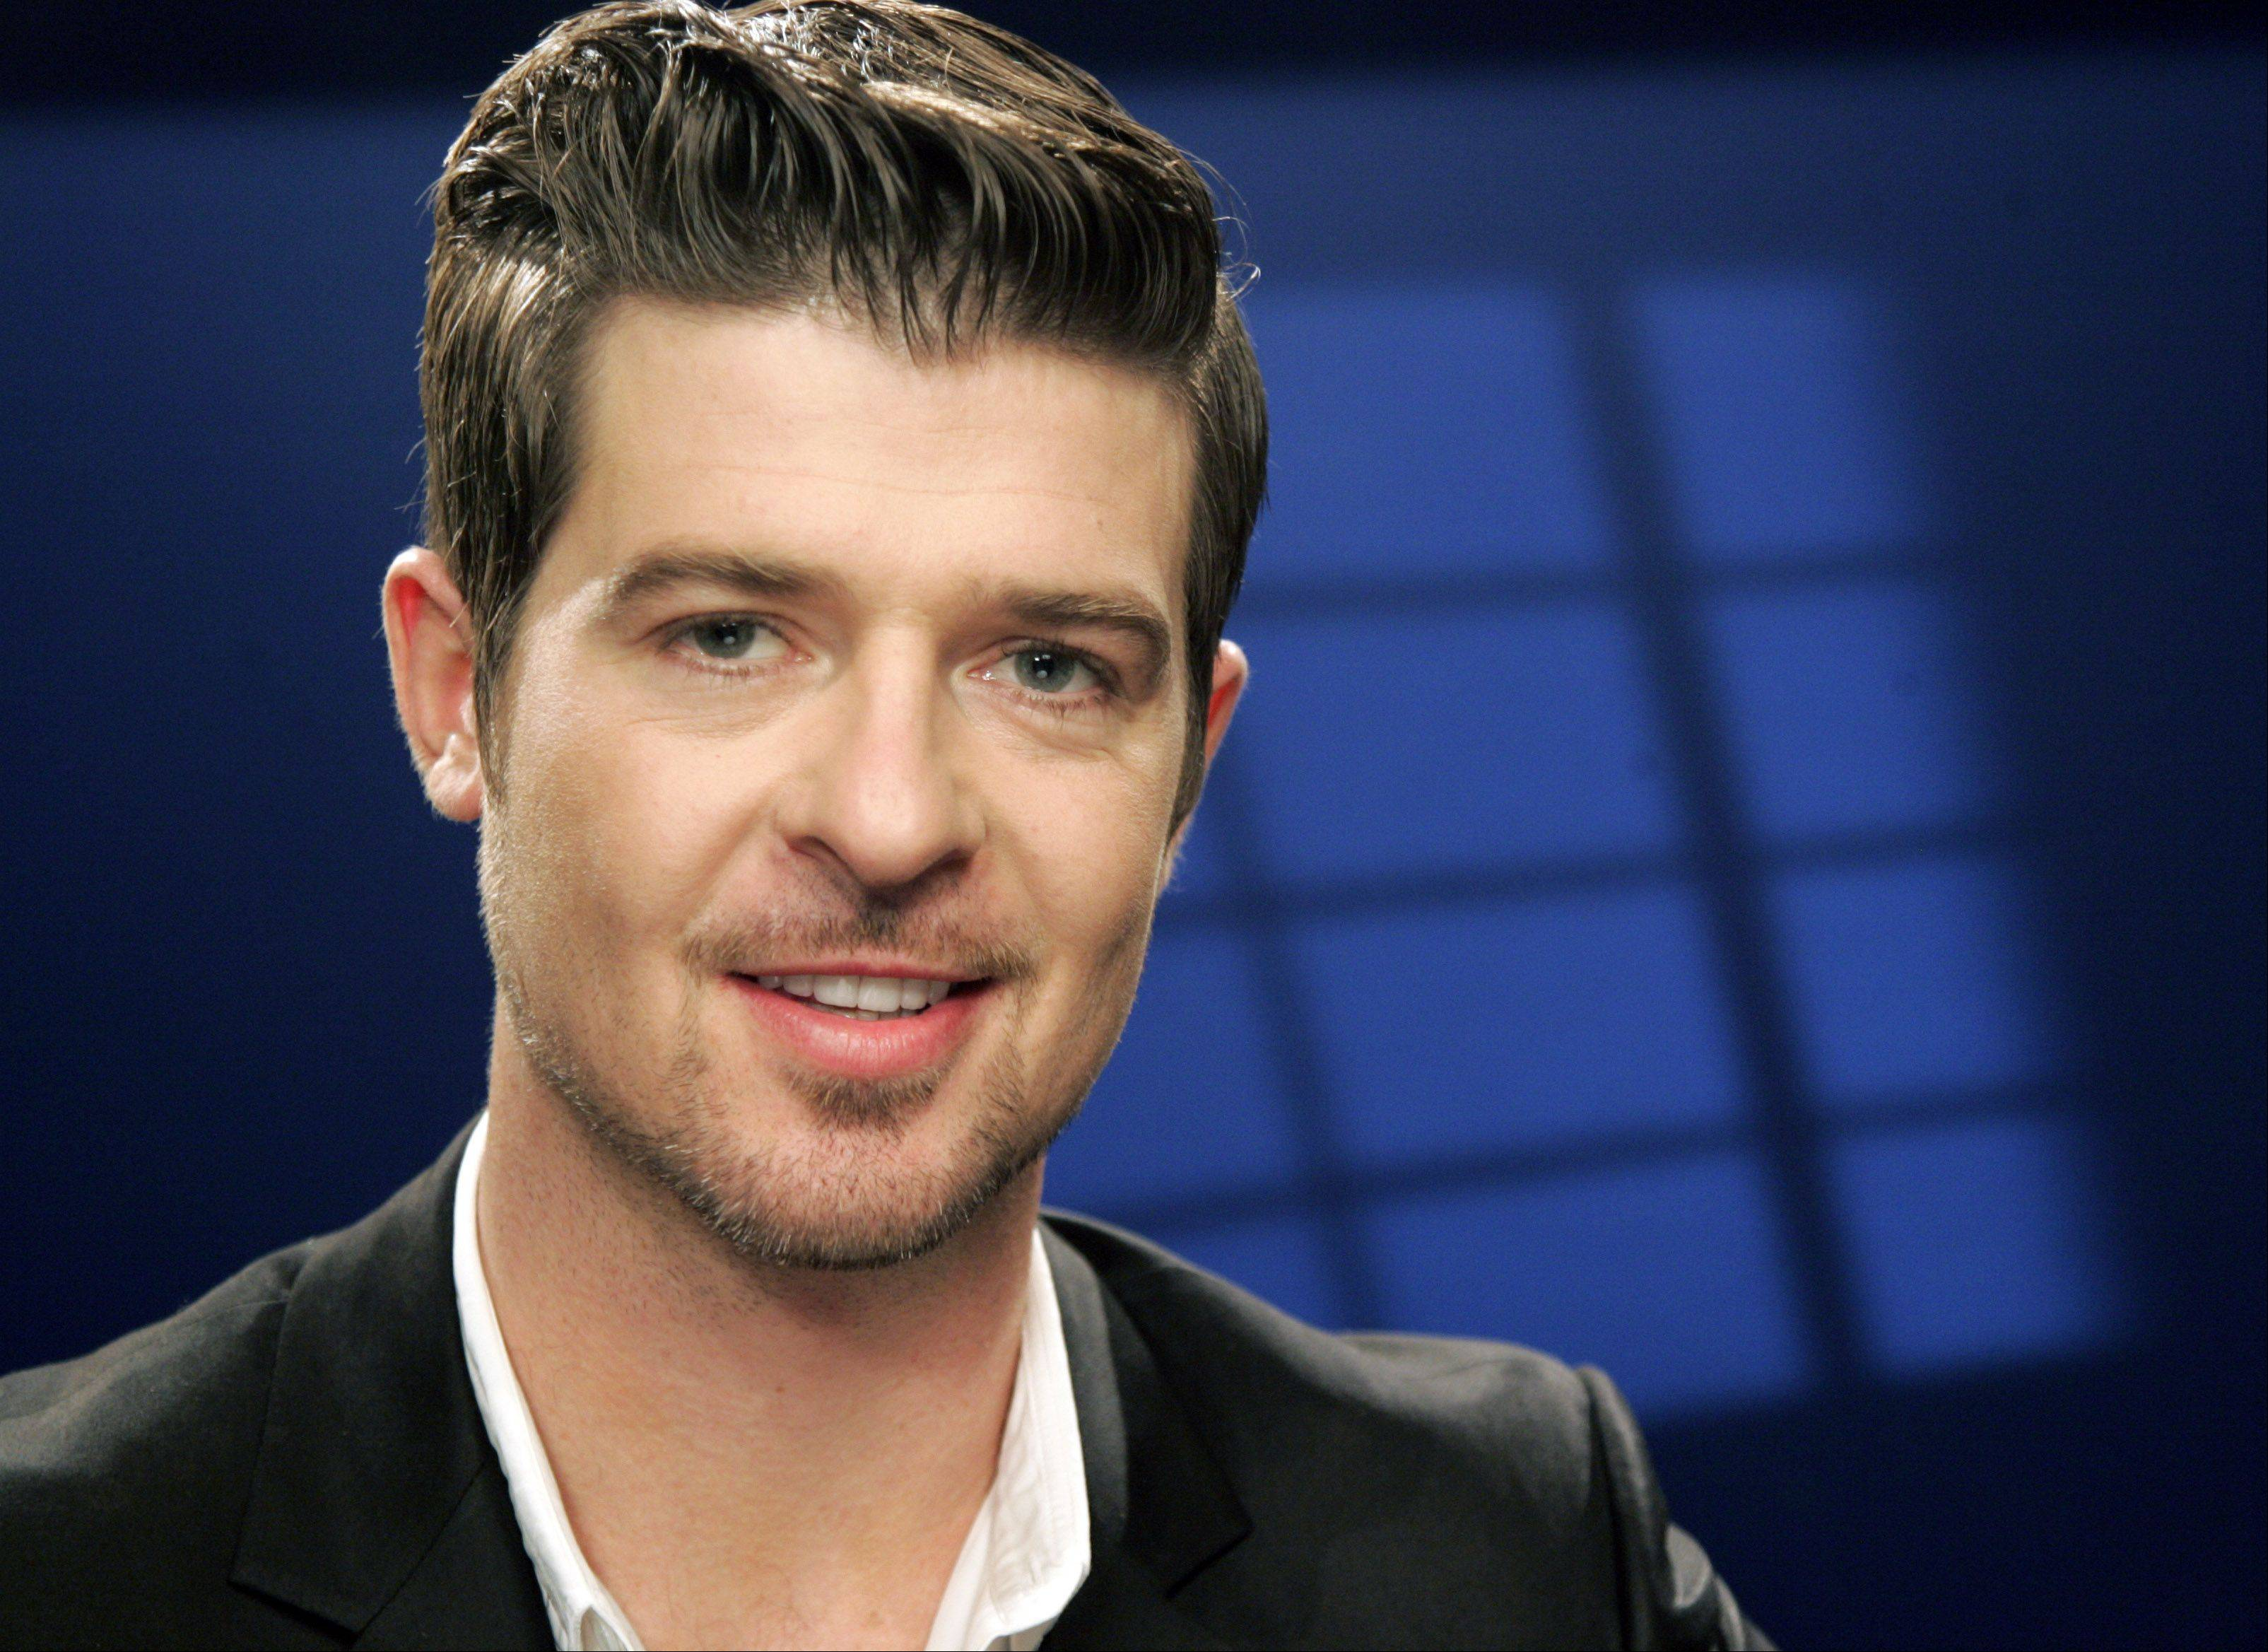 Robin Thicke will perform at Macy's Passport Presents Glamorama 2012 at Millennium Park's Harris Theater for Music and Dance in Chicago.